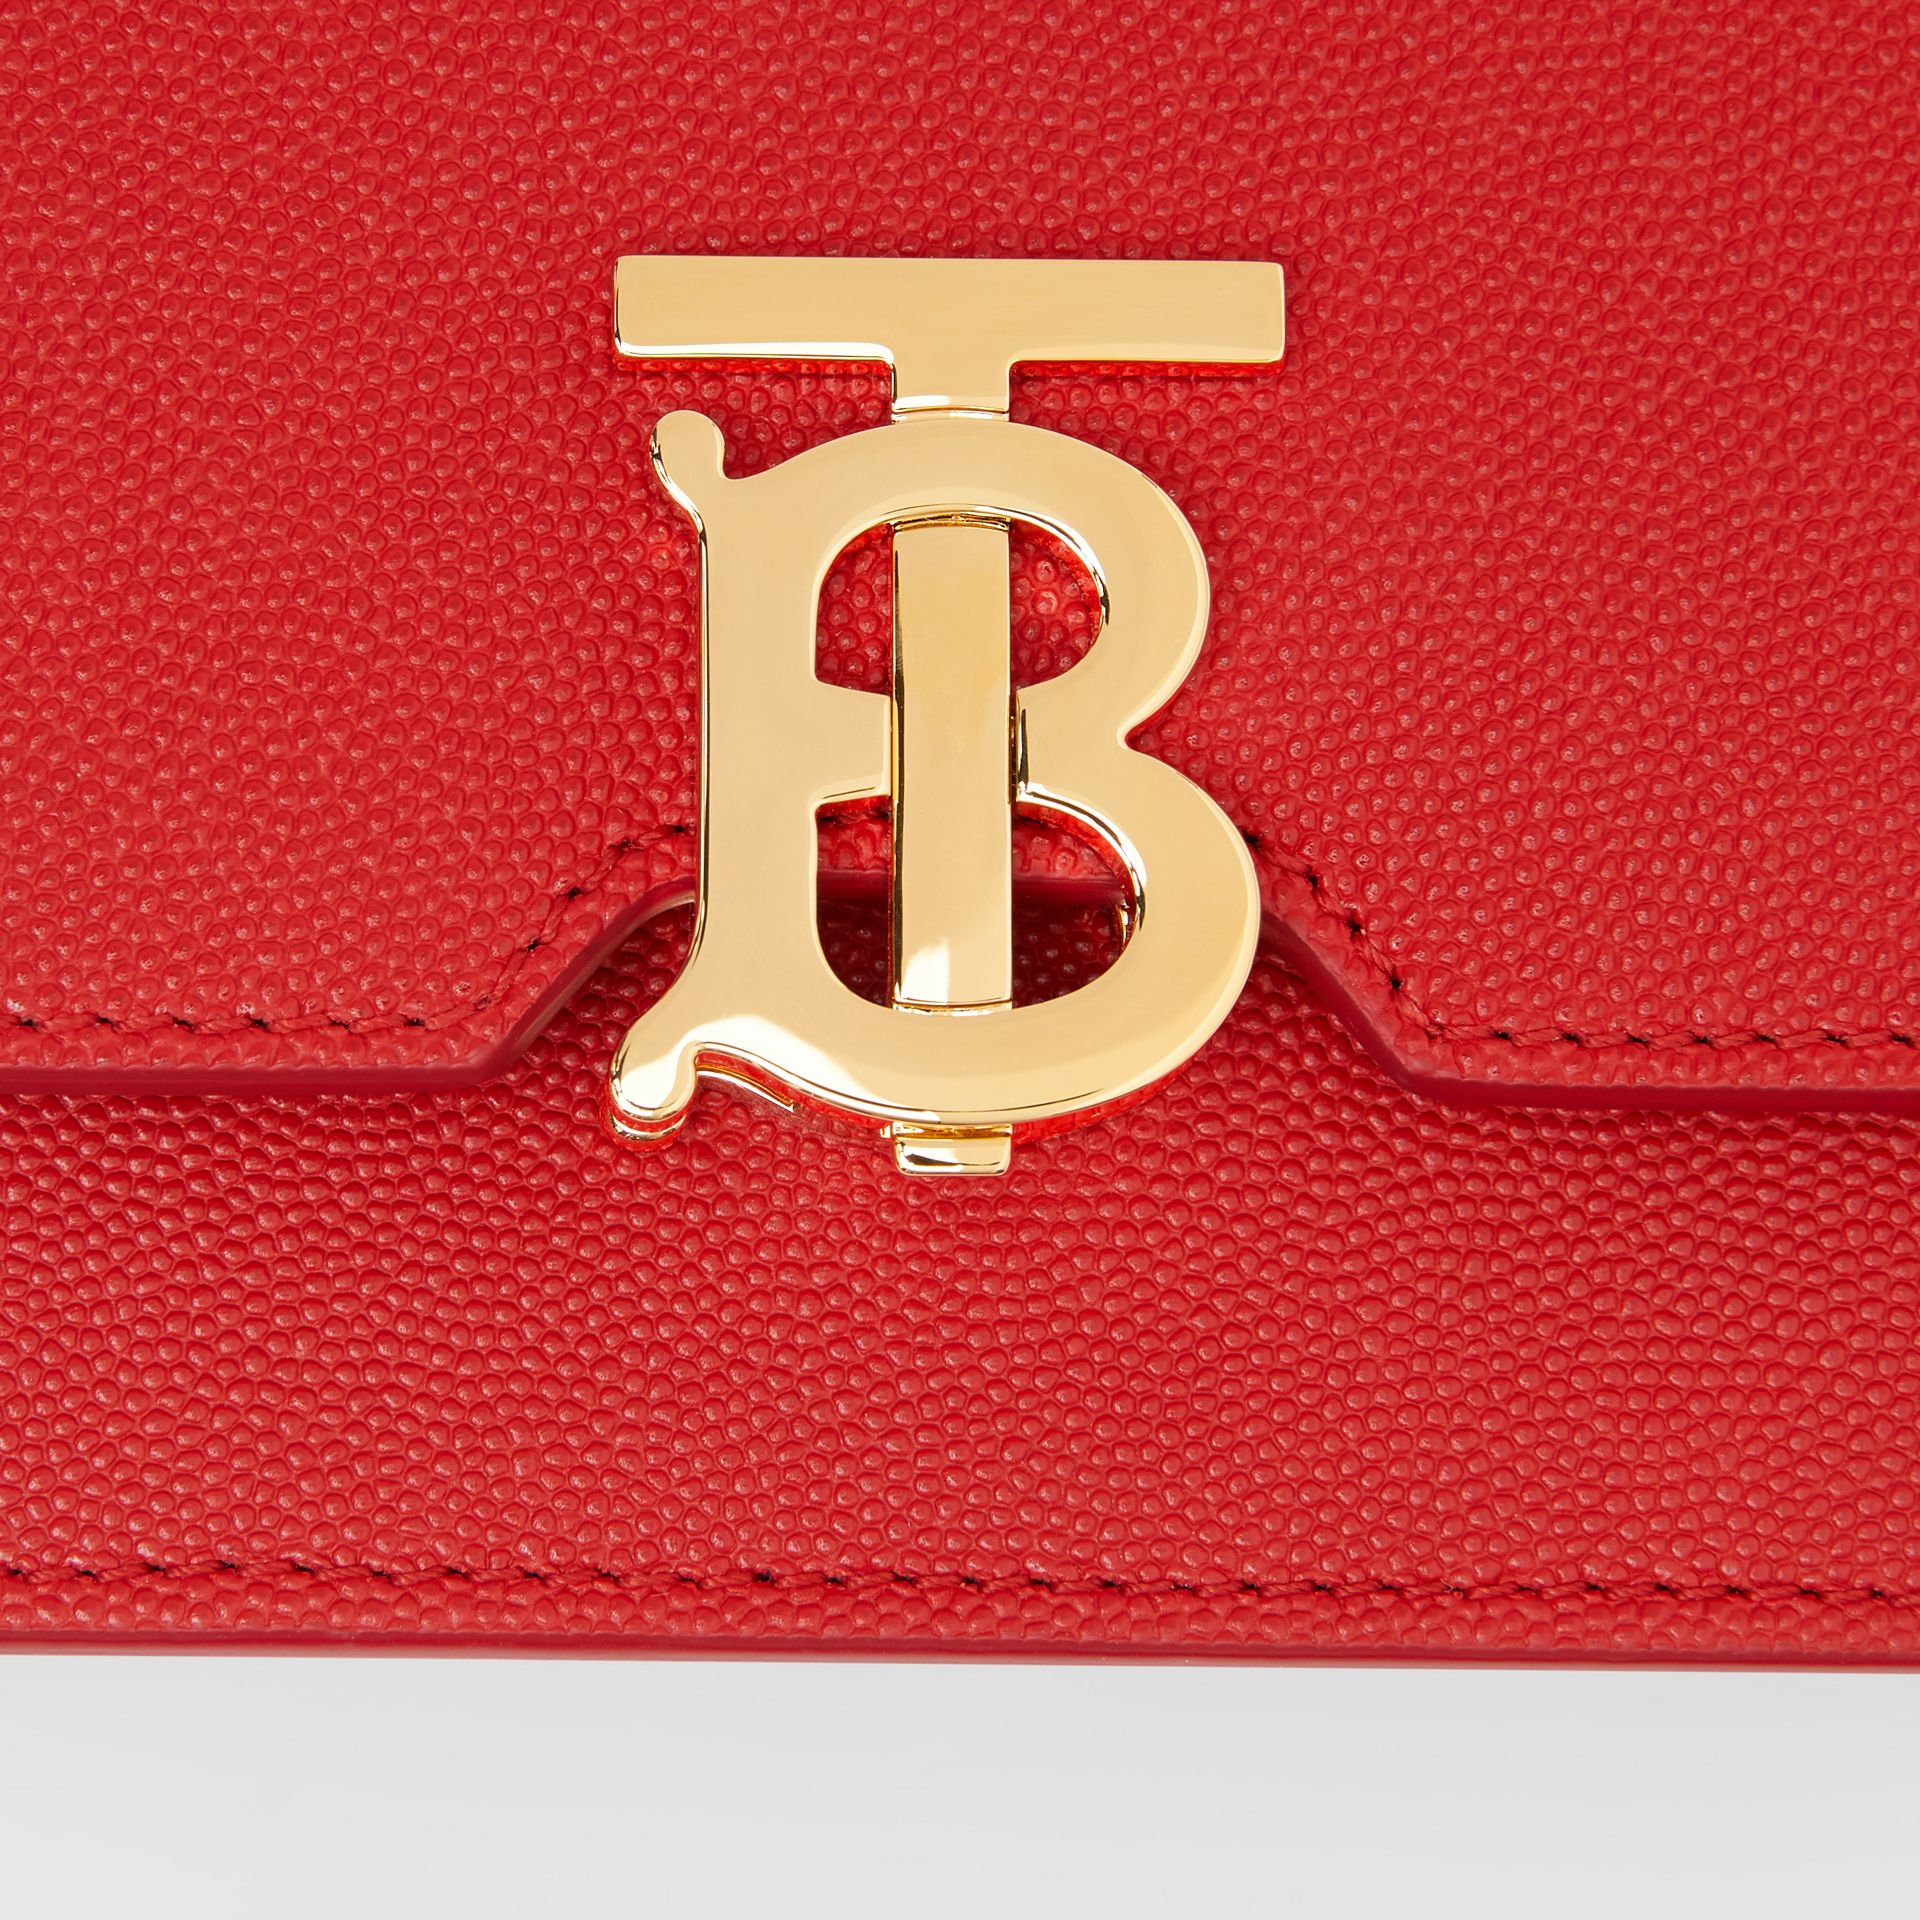 Mini Grainy Leather TB Bag in Bright Red - Women | Burberry United States - gallery image 1